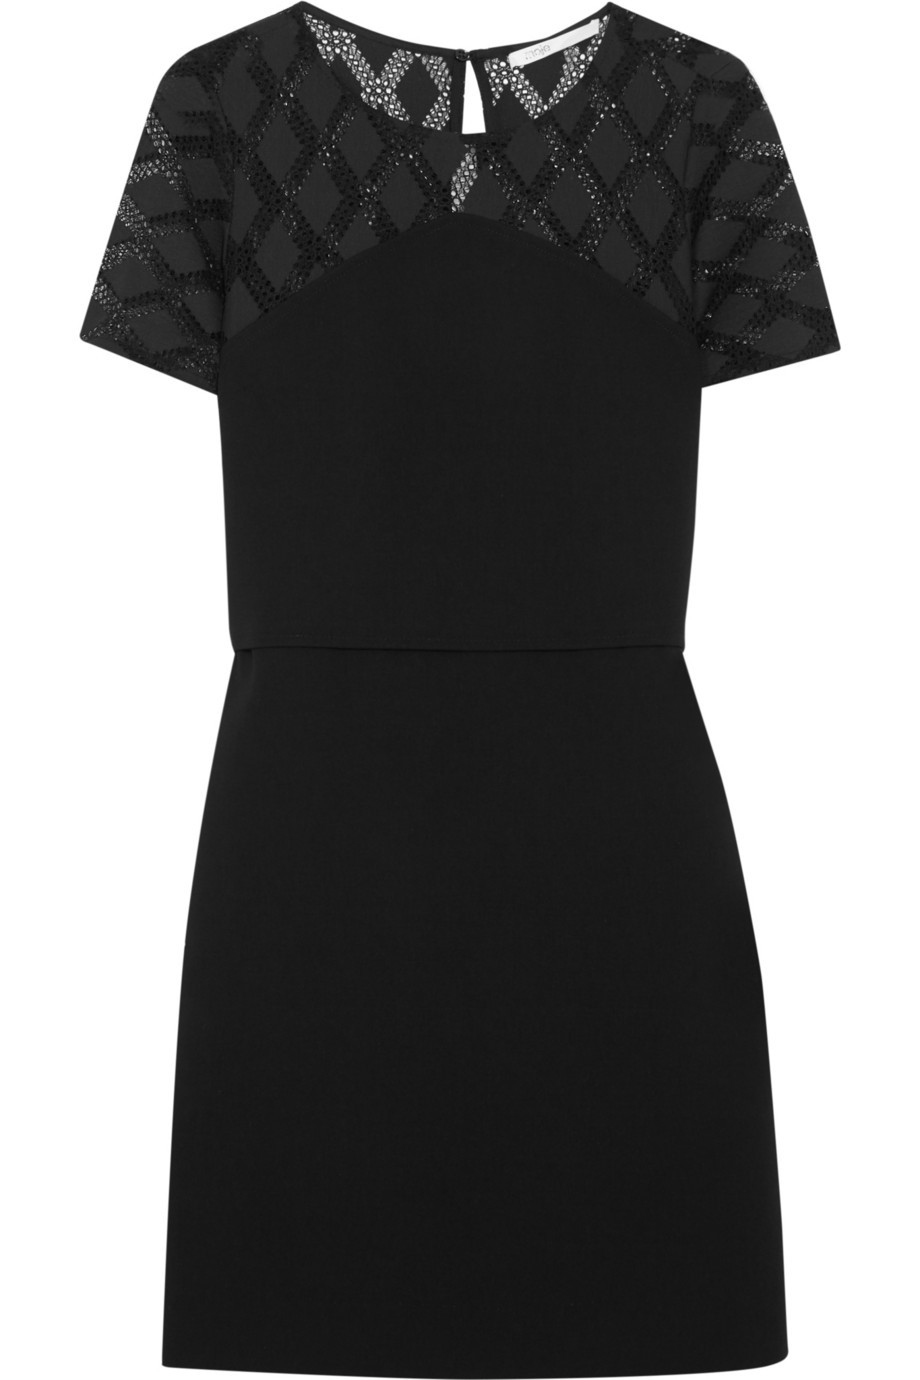 Rimini Crochet Trimmed Crepe Dress Black - style: shift; length: mid thigh; neckline: round neck; fit: tailored/fitted; pattern: plain; predominant colour: black; occasions: evening; fibres: polyester/polyamide - mix; shoulder detail: added shoulder detail; sleeve length: short sleeve; sleeve style: standard; texture group: crepes; pattern type: fabric; embellishment: lace; season: s/s 2016